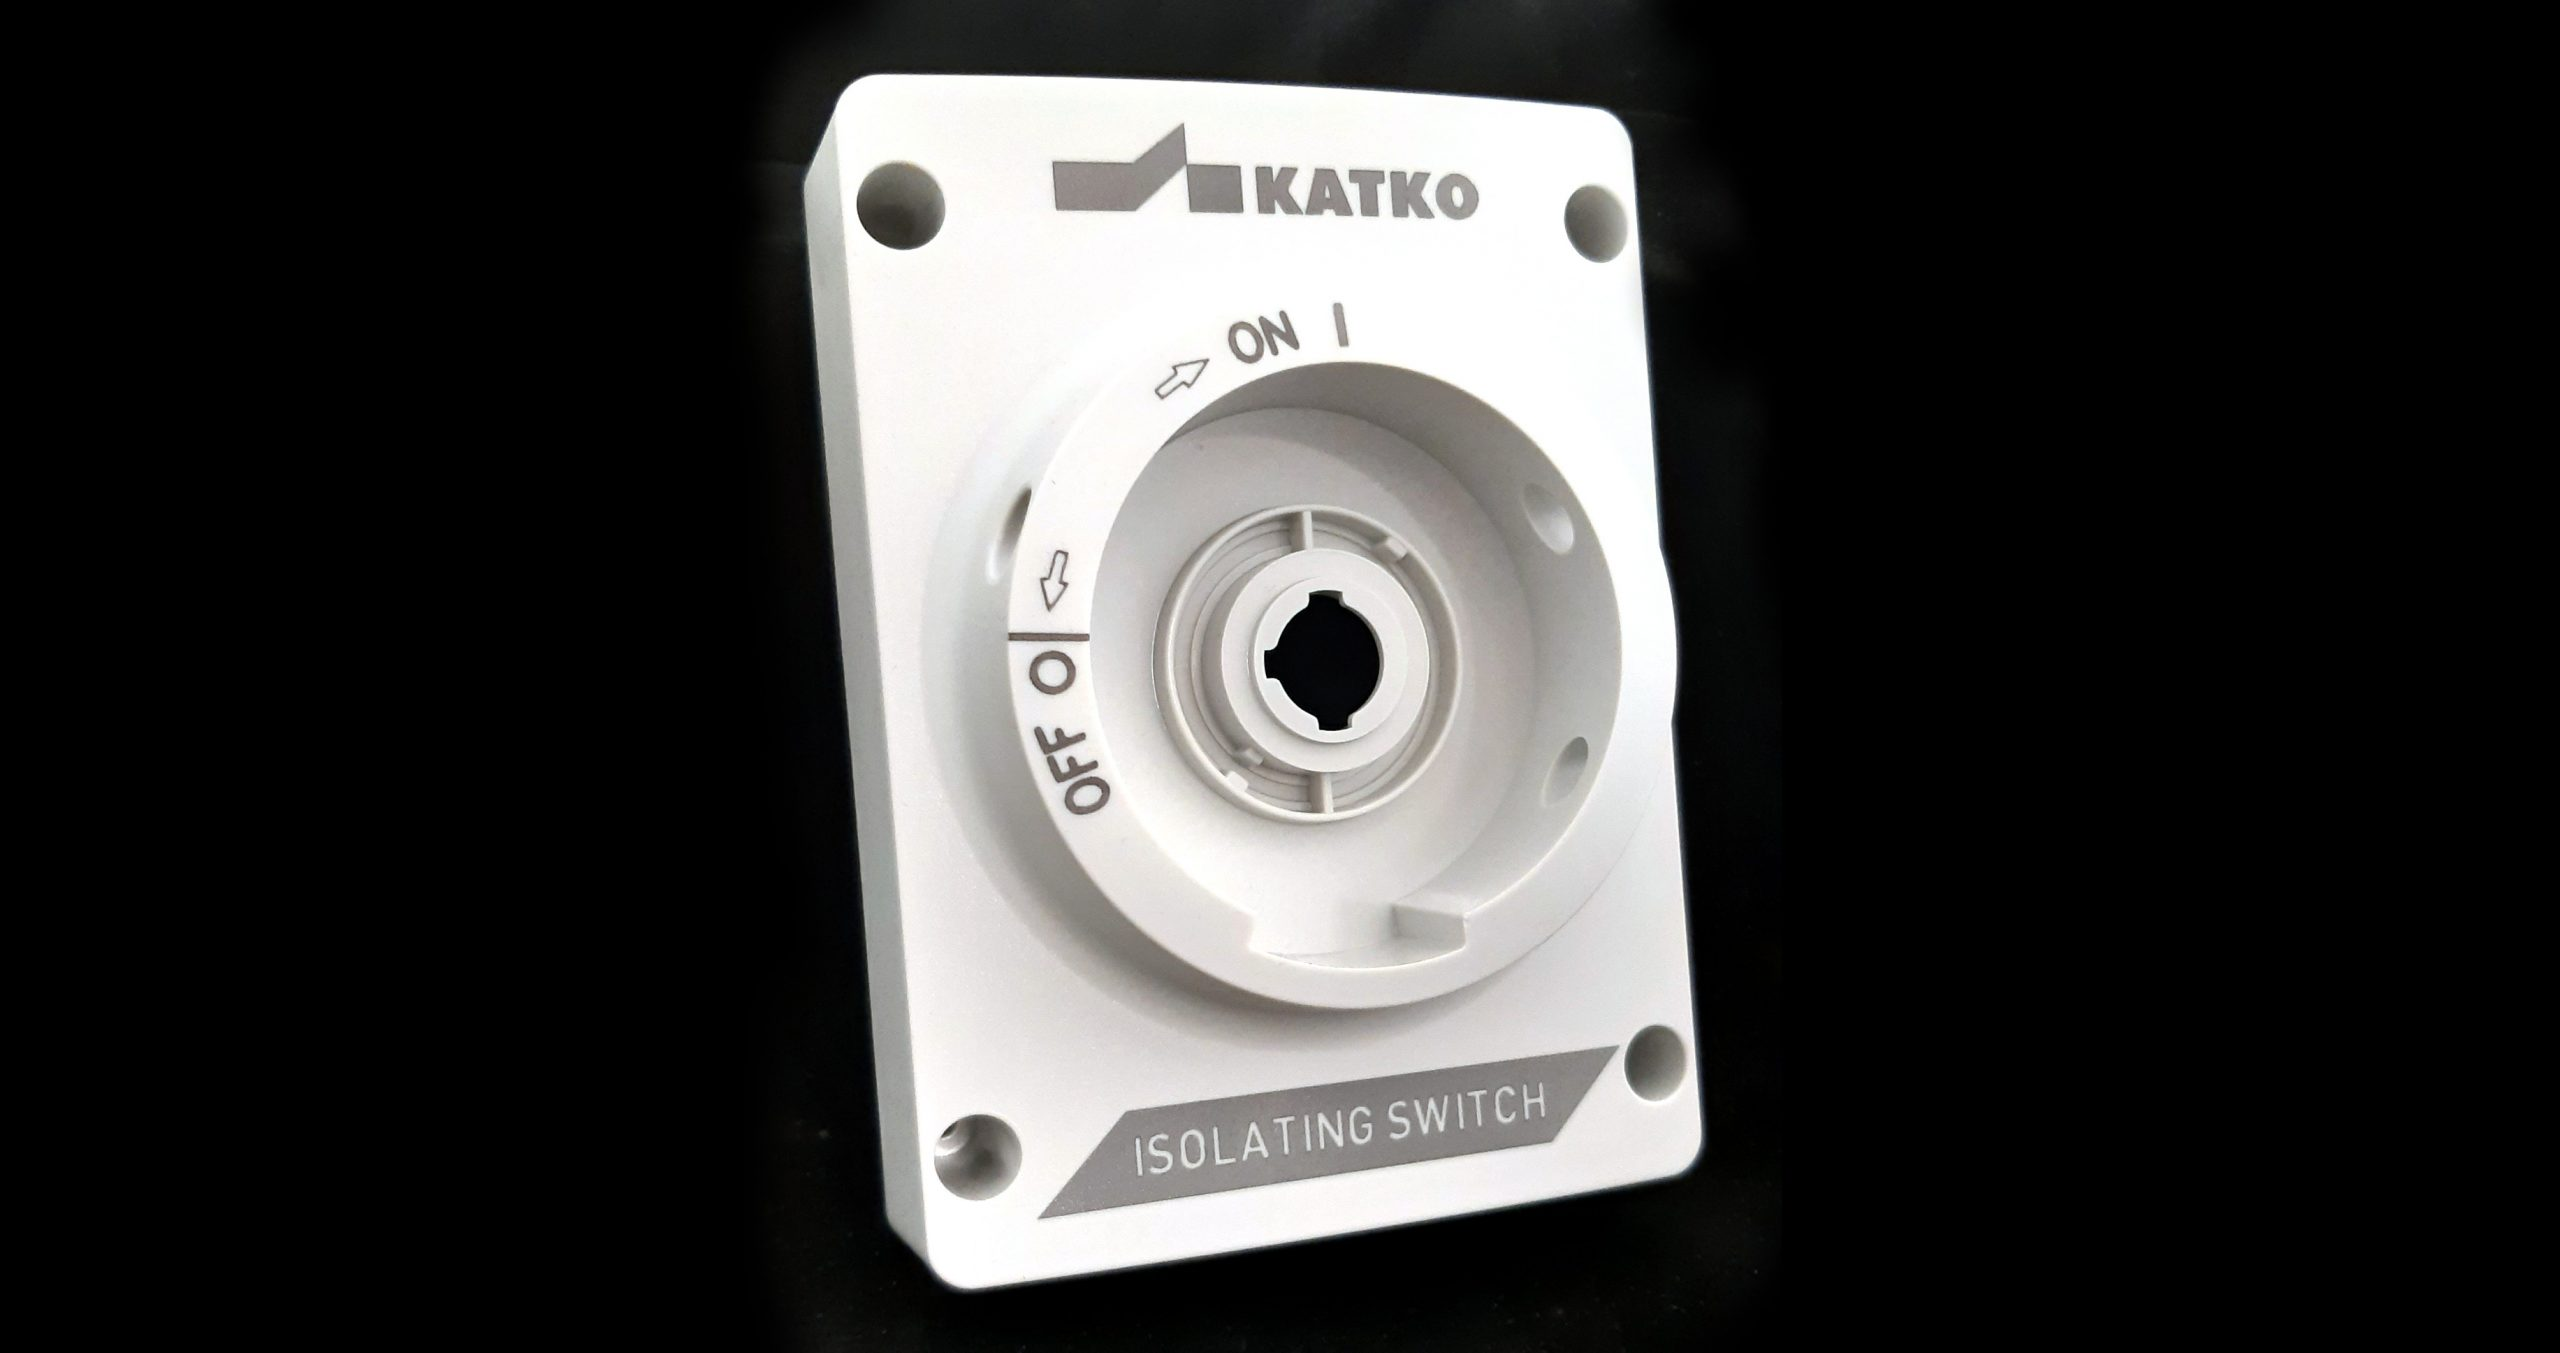 Laser marking at two heights on a plastic switch